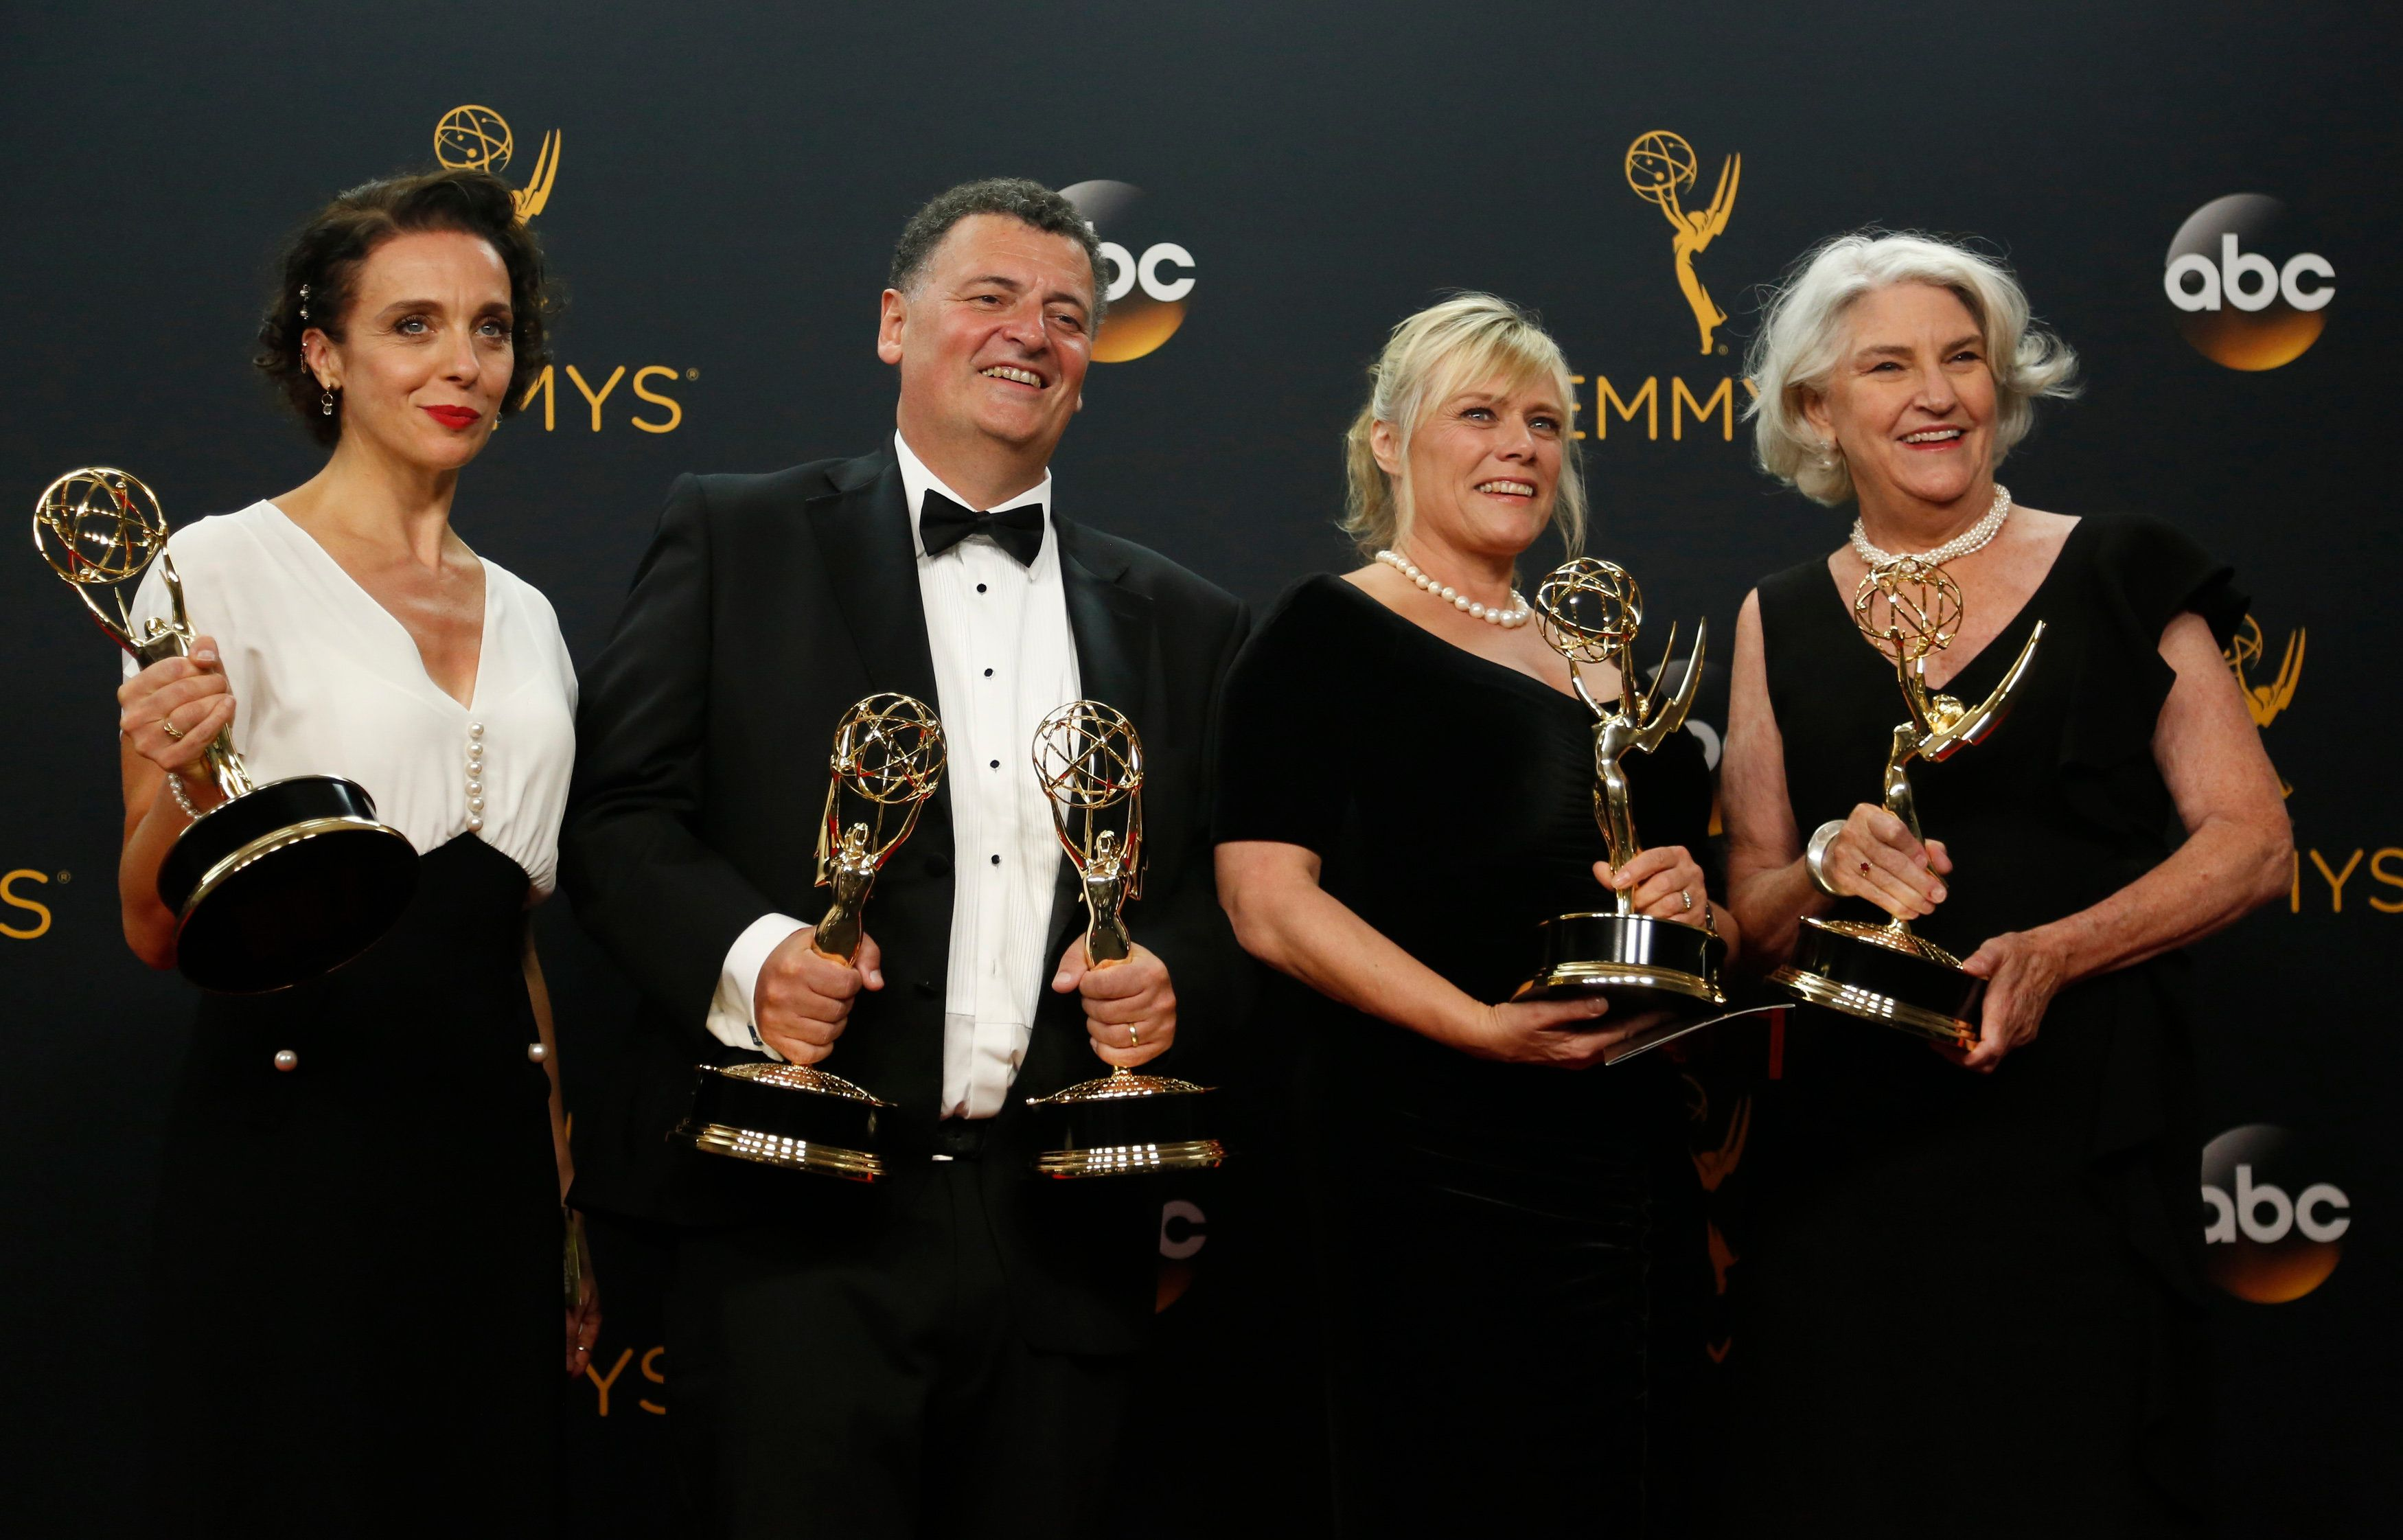 """Actress Amanda Abbington (L), producers Steven Moffat, Sue Verue and Beryl Vertue pose backstage with their award for Outstanding Television Movie for """"Sherlock: The Abominable Bride"""" at the 68th Primetime Emmy Awards in Los Angeles, California U.S., September 18, 2016.  REUTERS/Mario Anzuoni"""